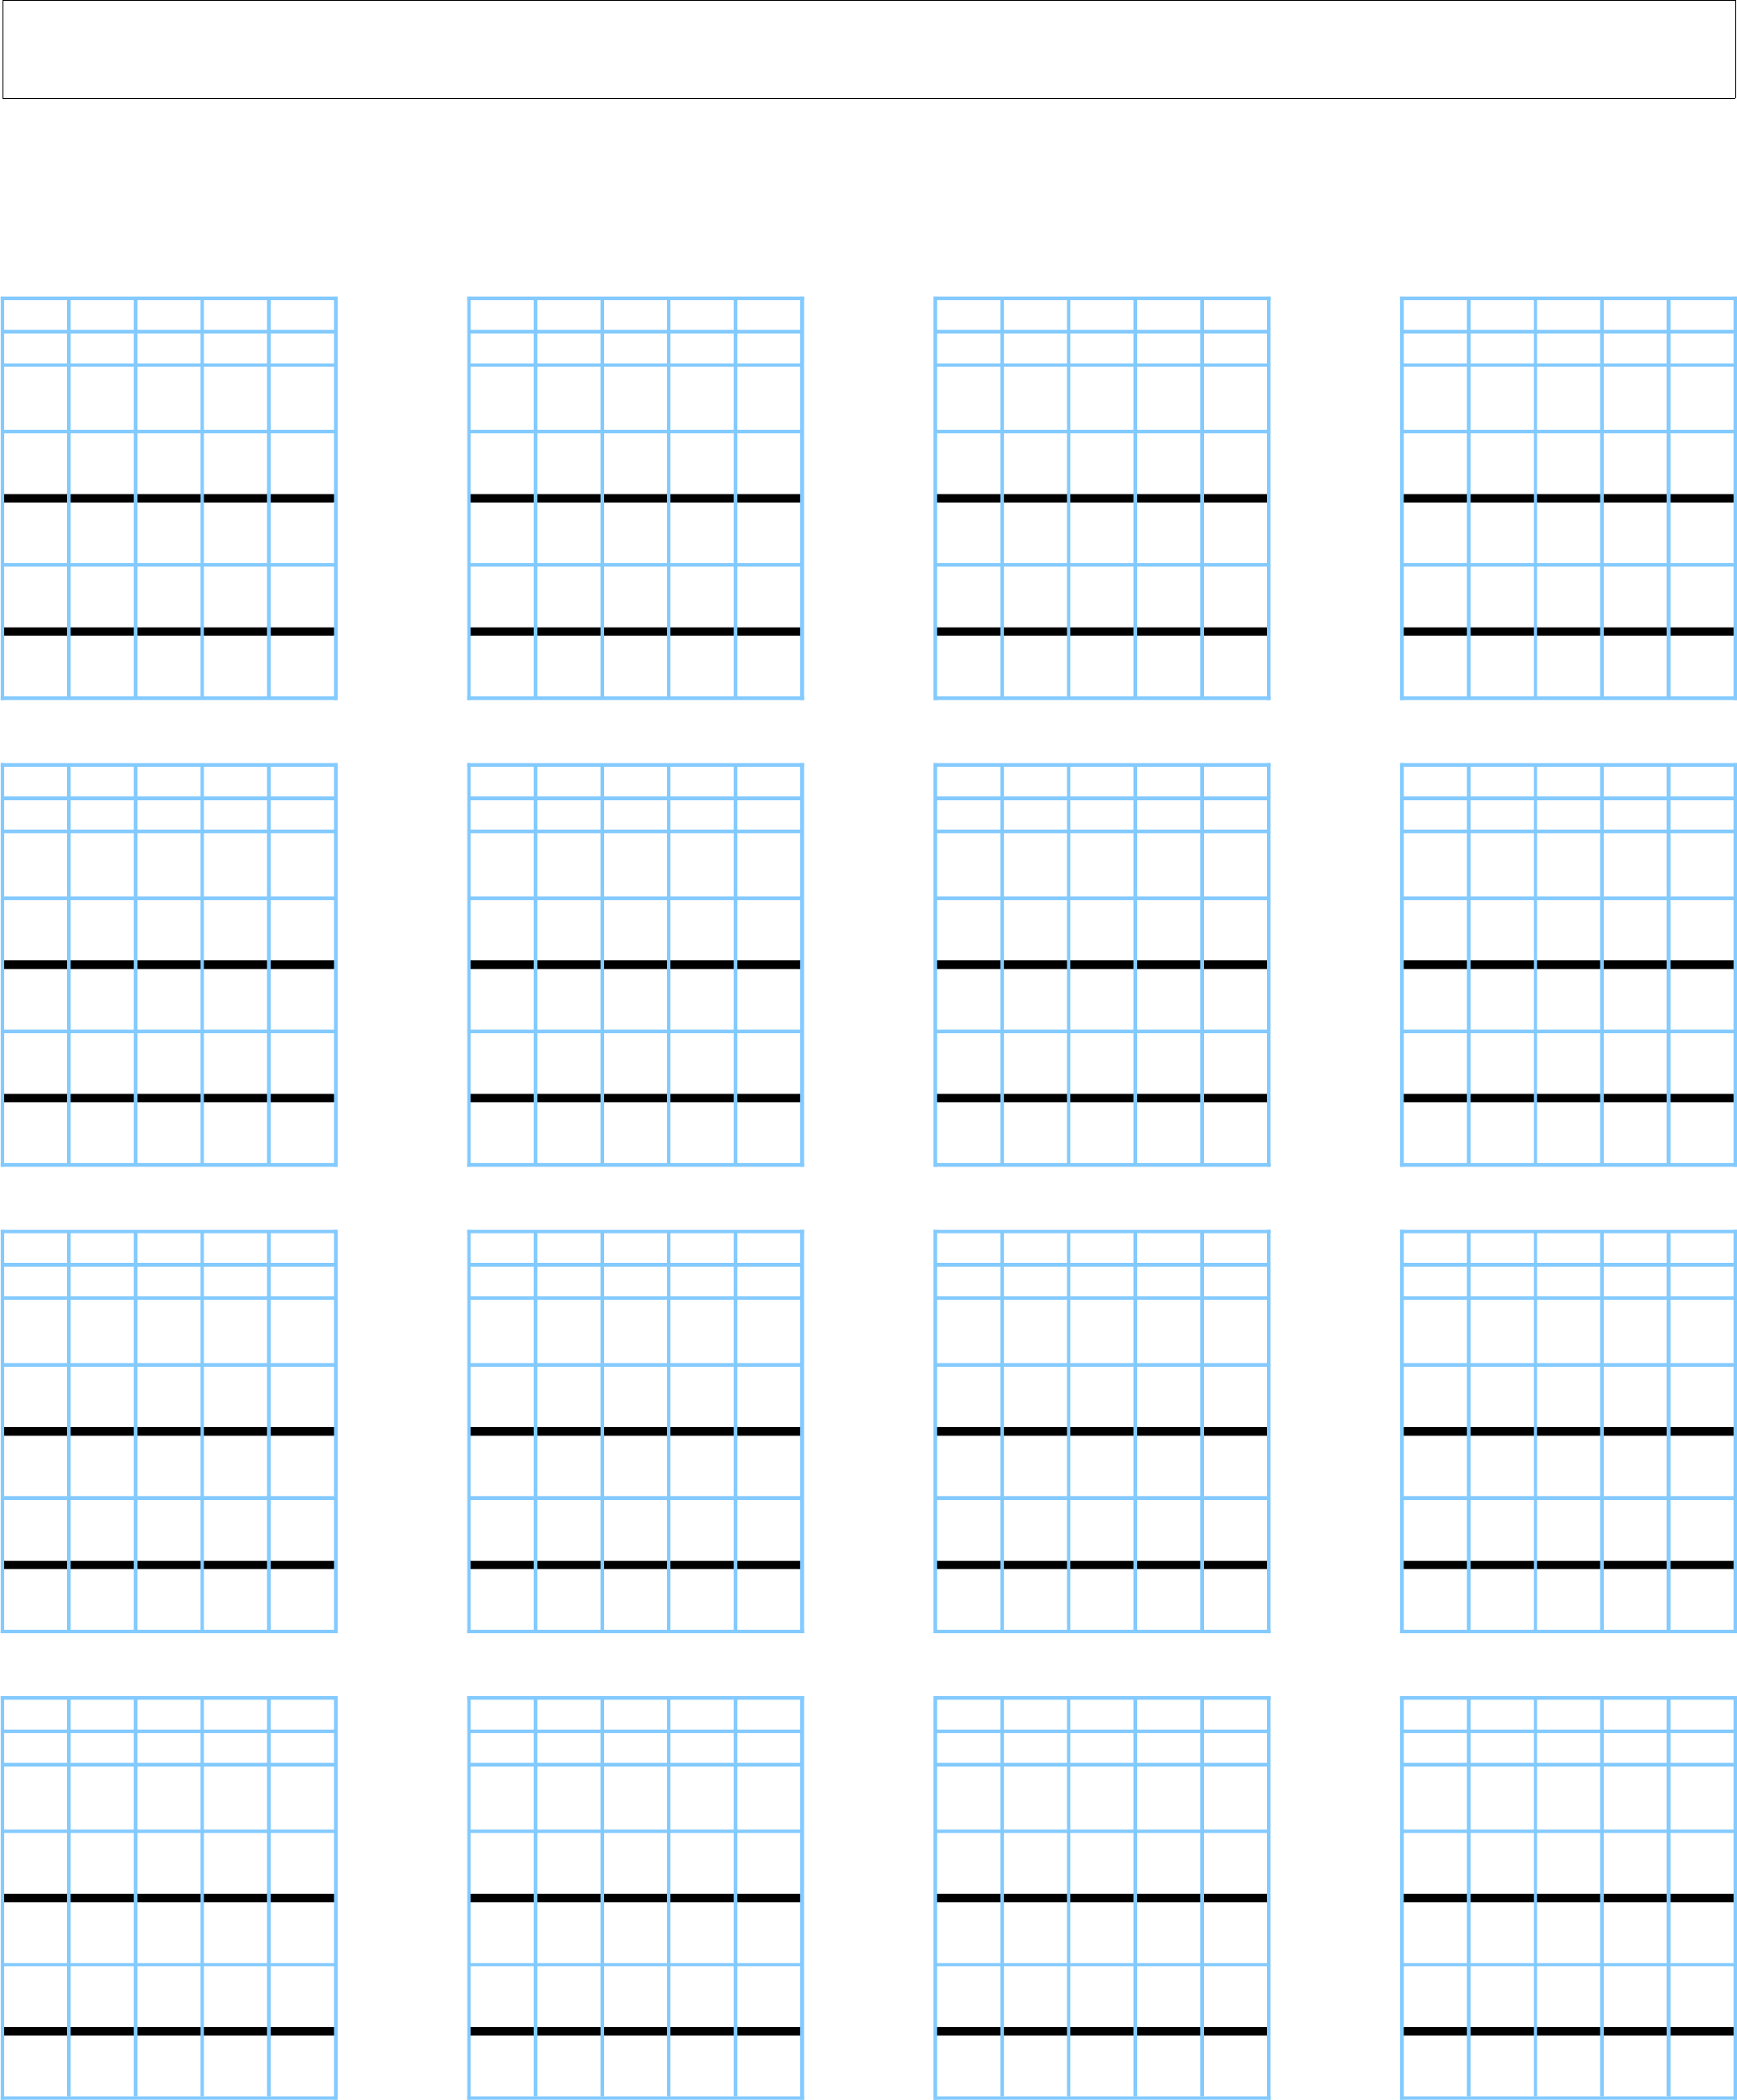 3 Digit Multiplication Worksheets With Grids grid multiplication – Grid Multiplication Worksheets